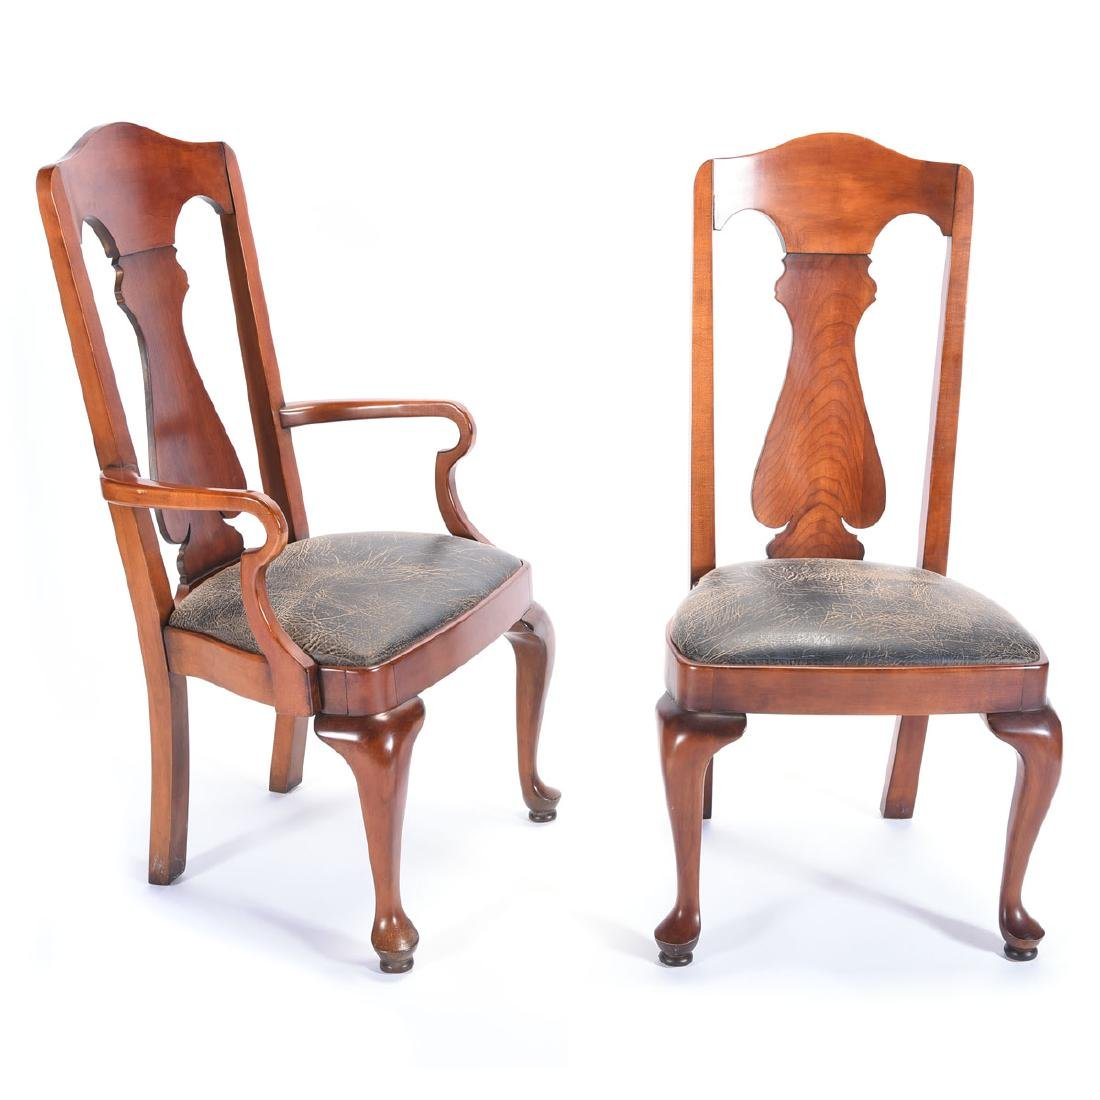 Six Ralph Lauren For Henredon Fiddleback Dining Chairs